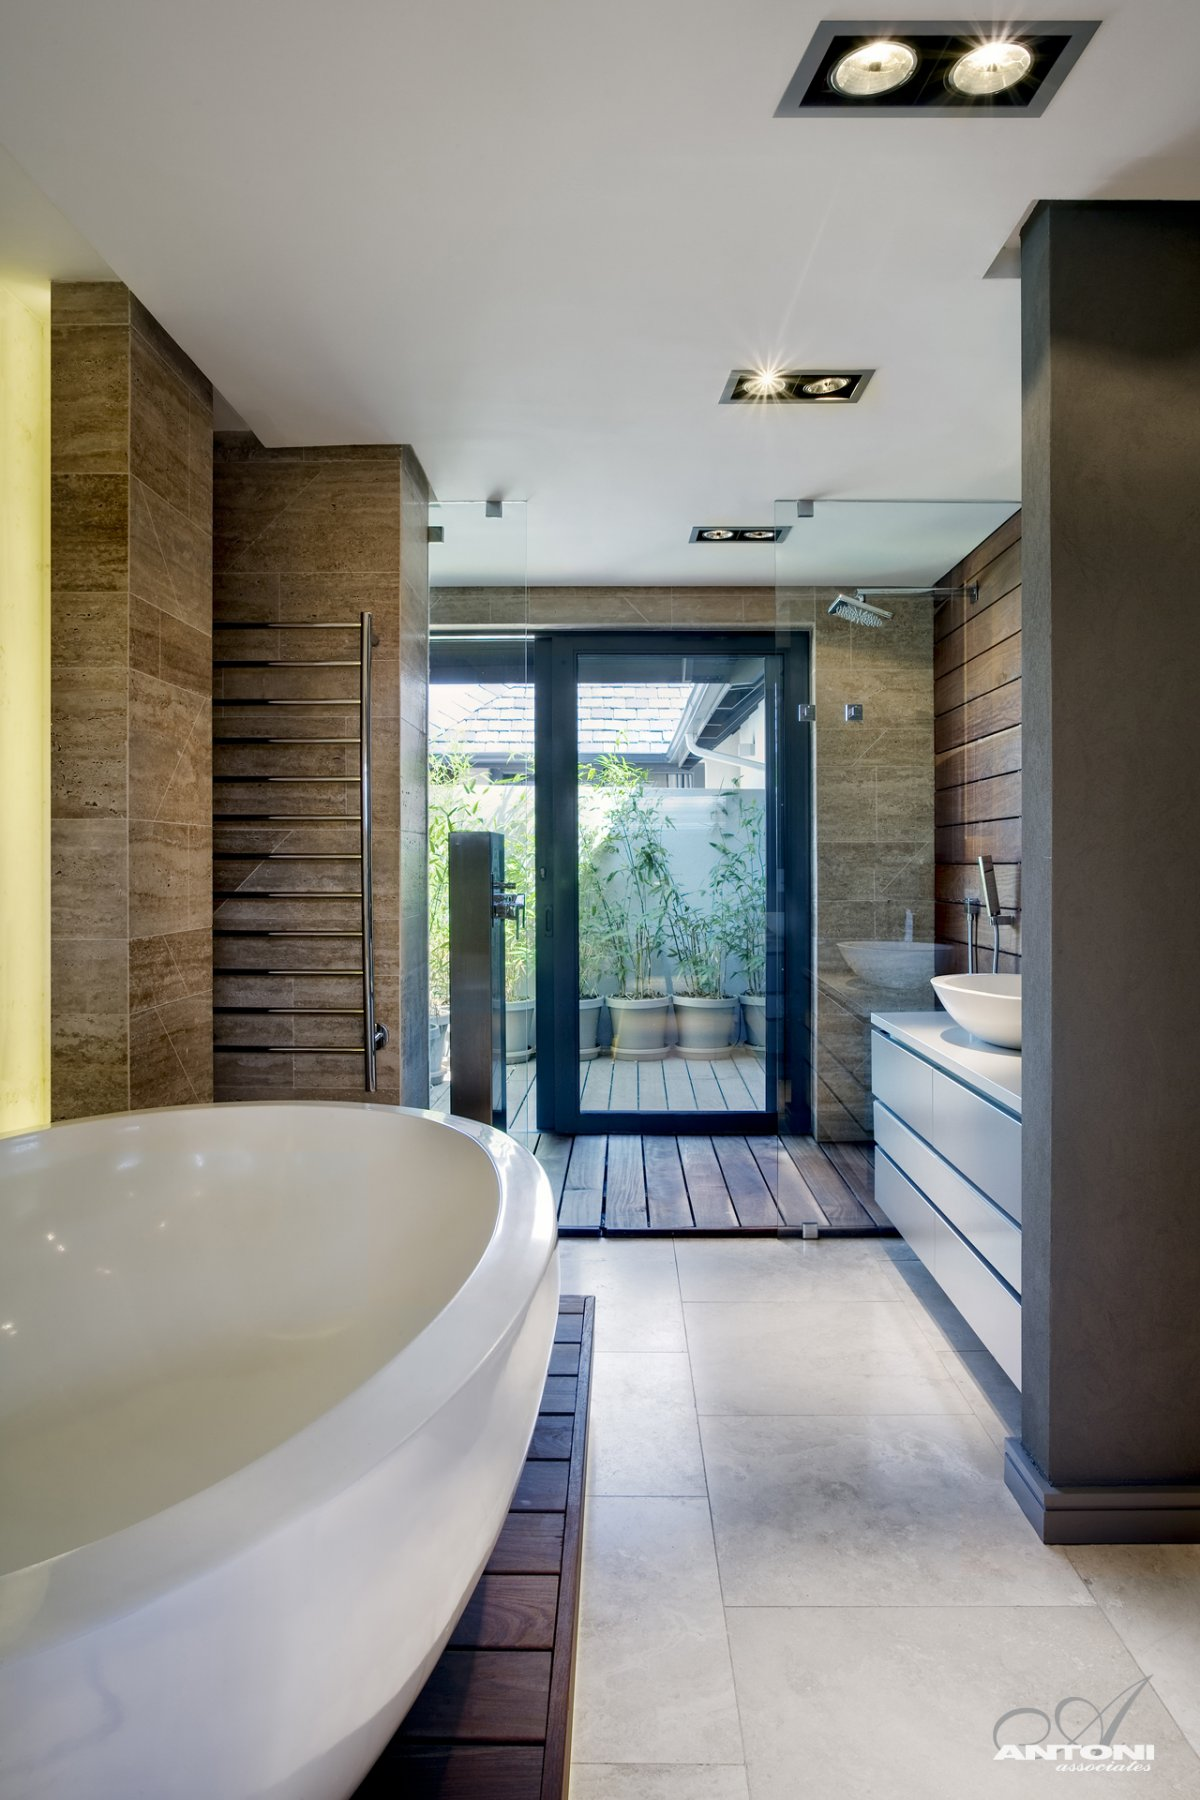 Bathroom, Glass Shower, Luxurious Interior, Pearl Valley Golf Estate, South Africa